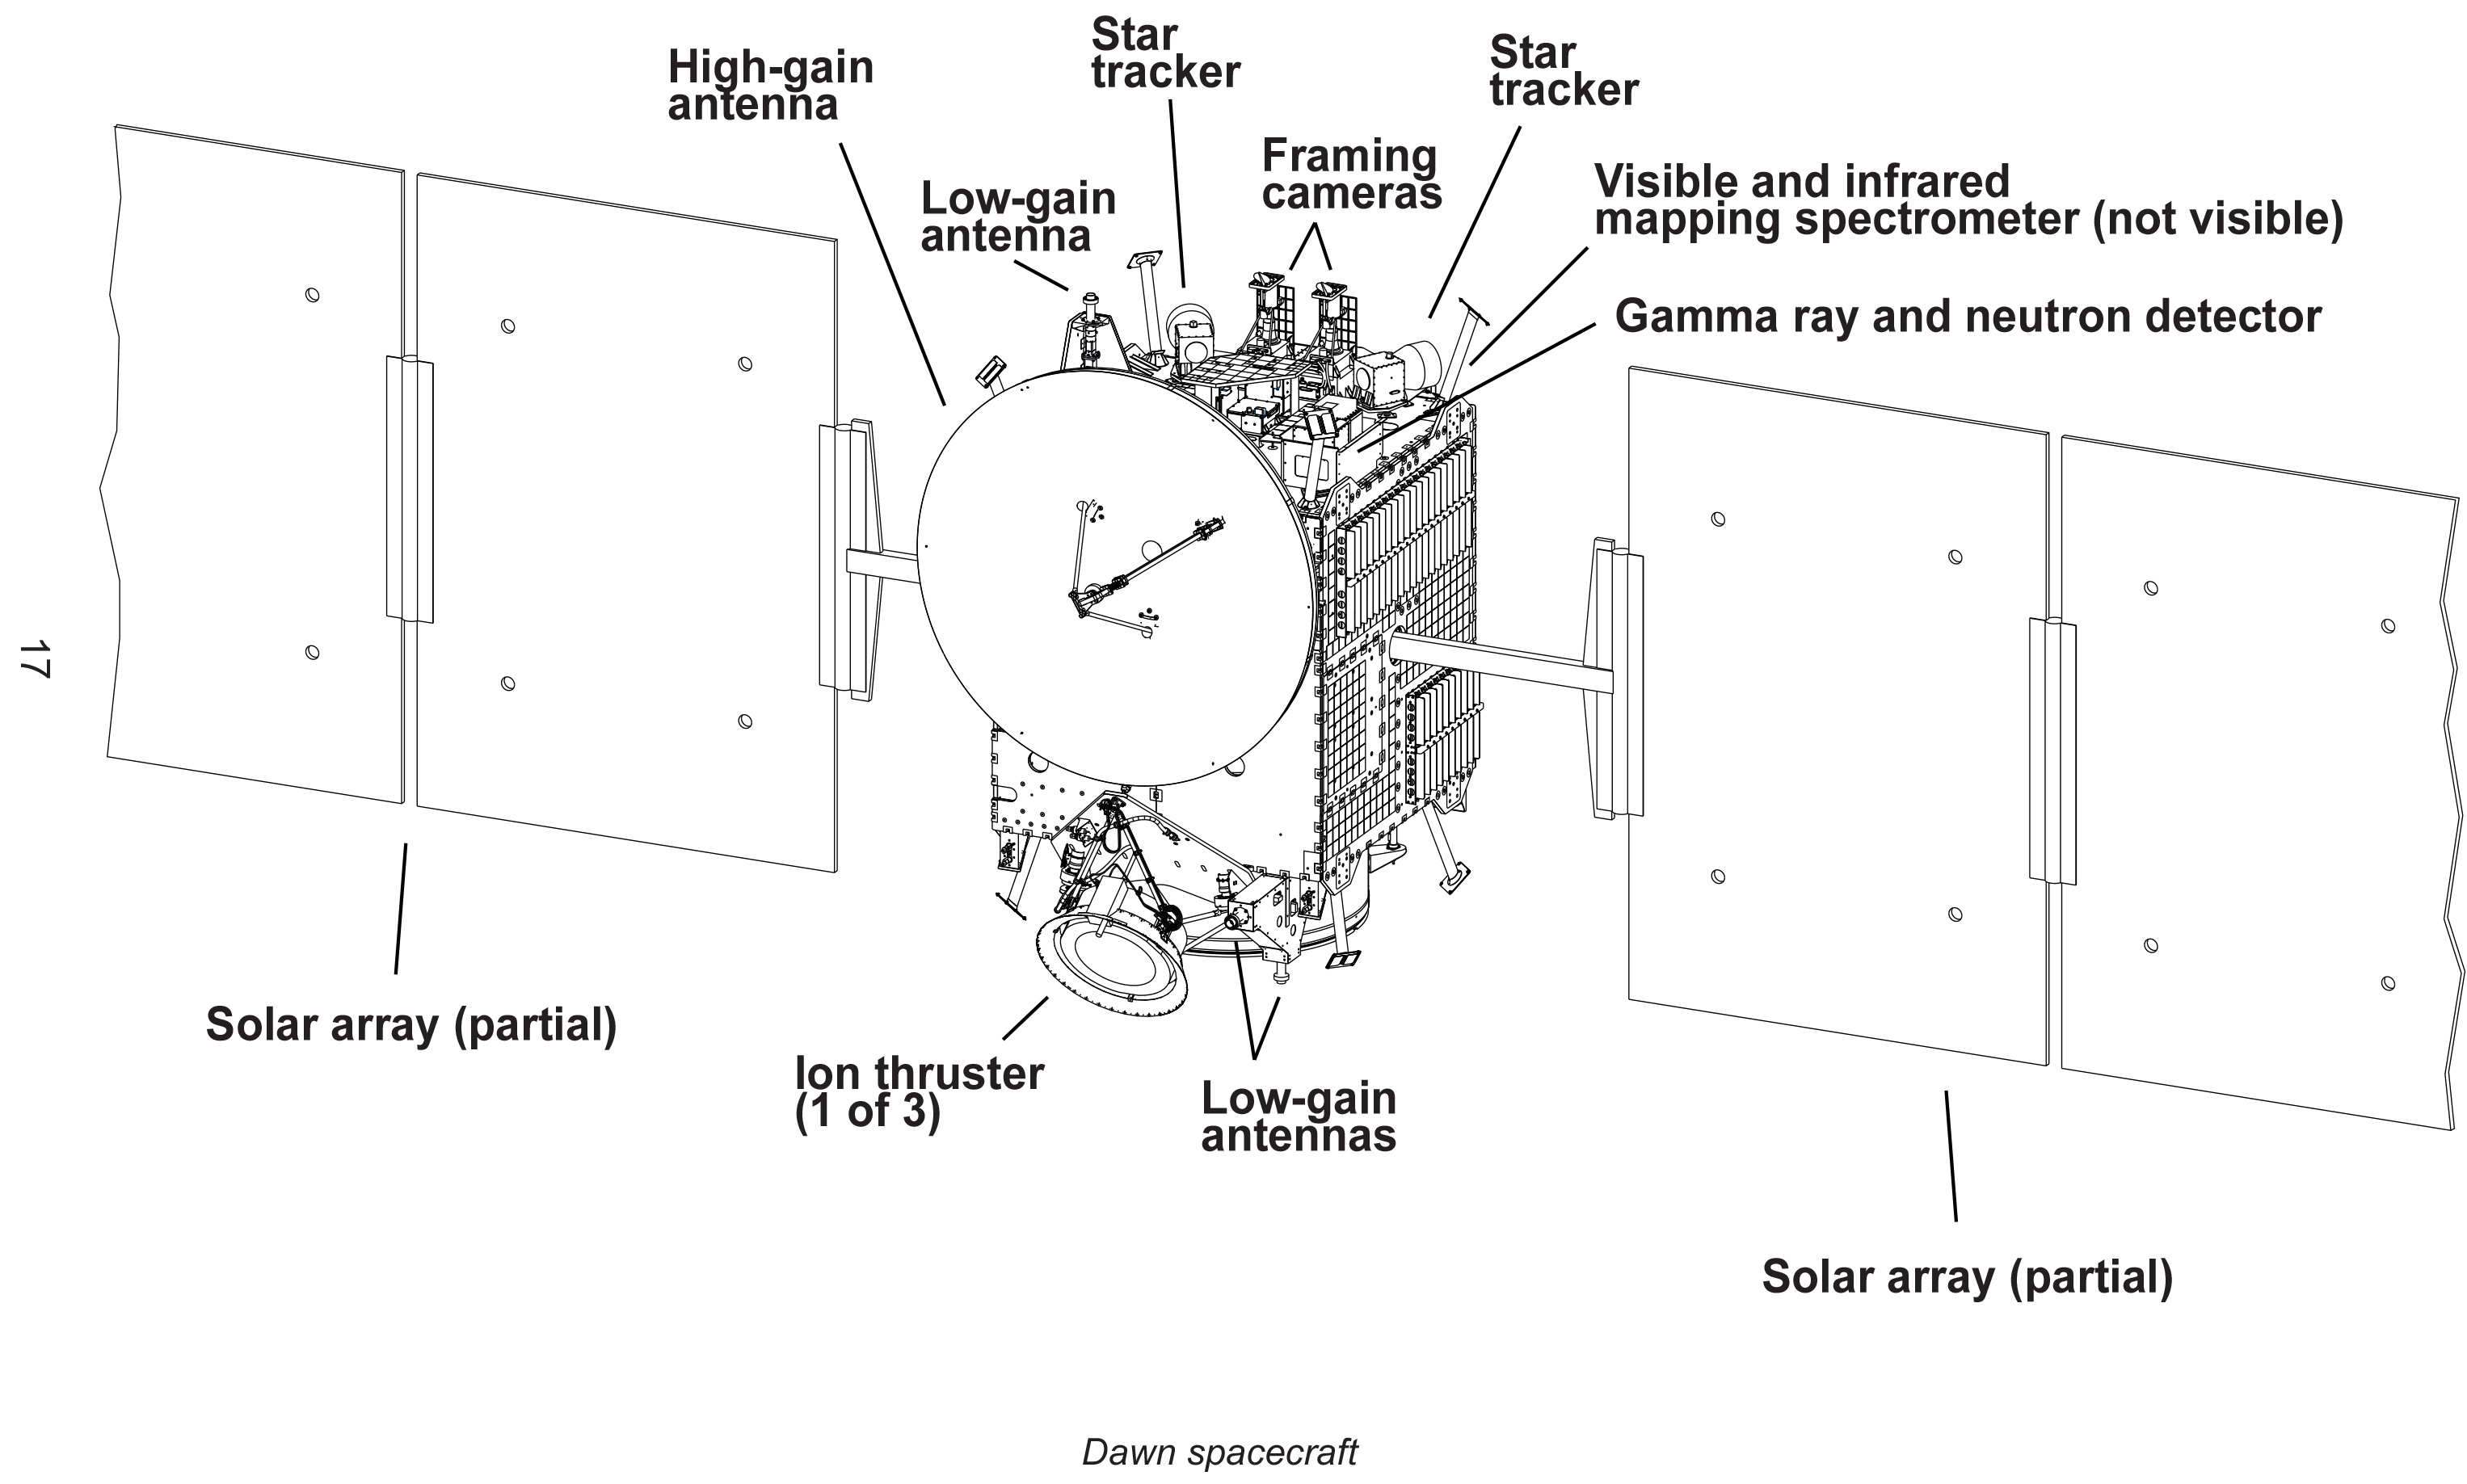 Dawn Spacecraft Diagram No 1